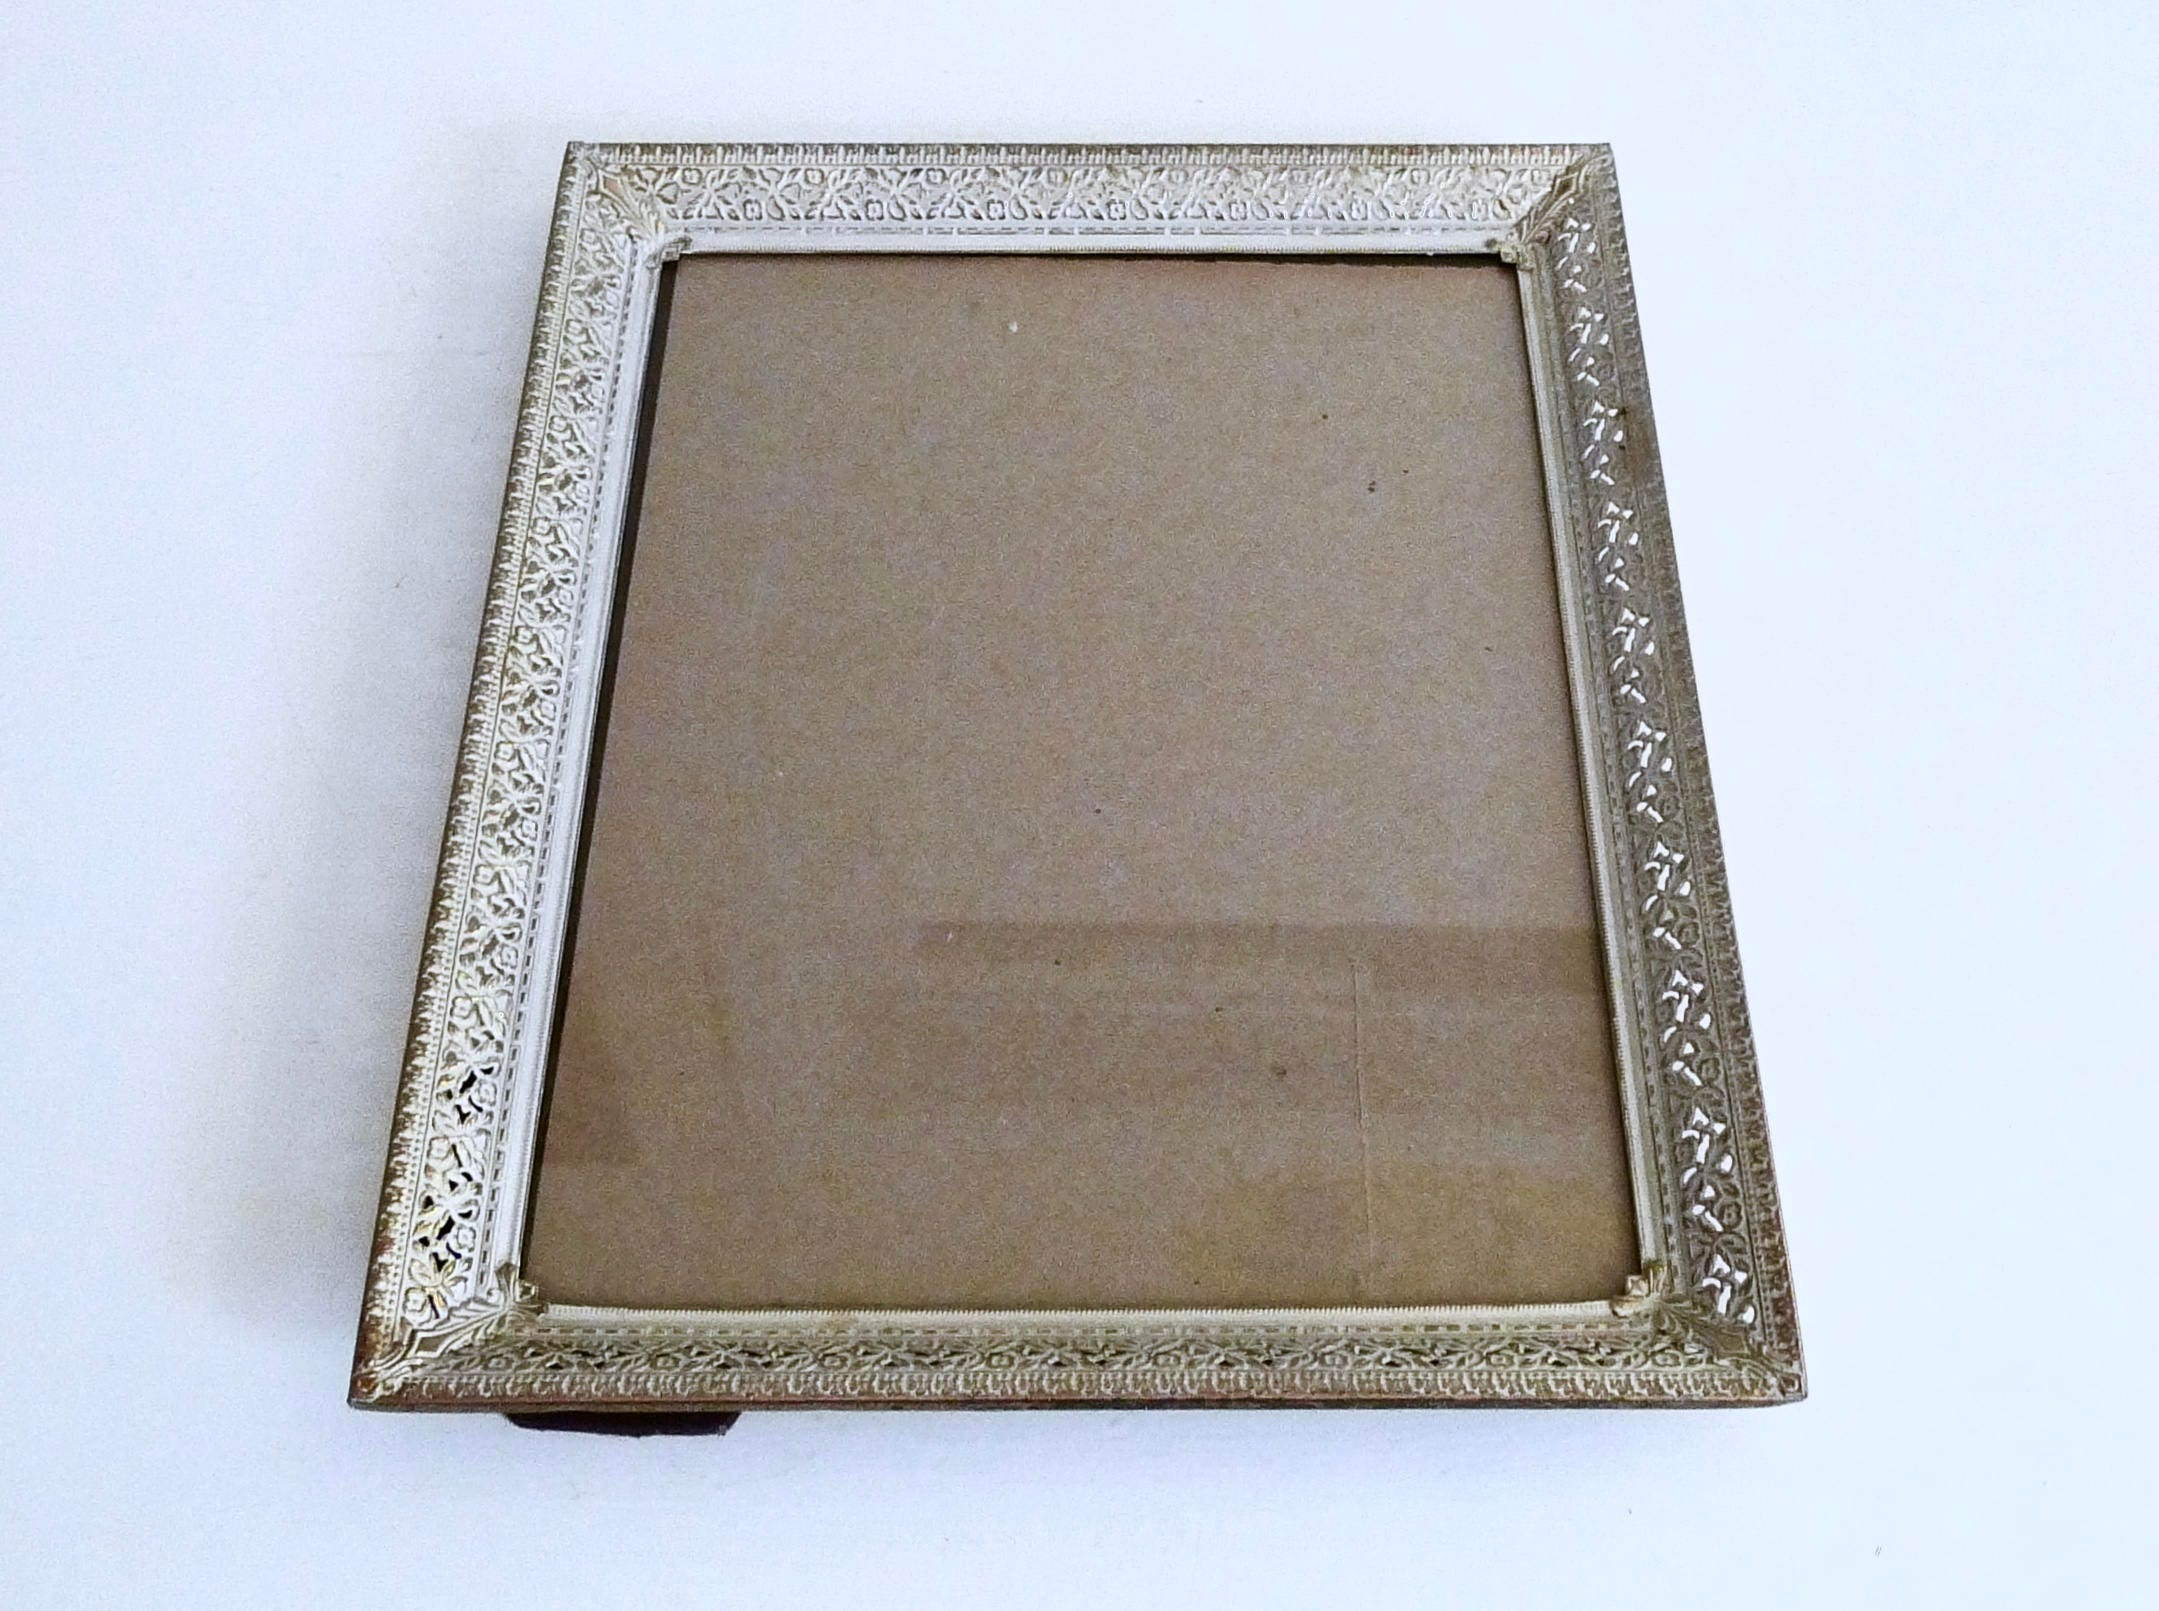 Vintage 11x14 Picture Frame 11 X 14 Antique Gold Metal Embossed